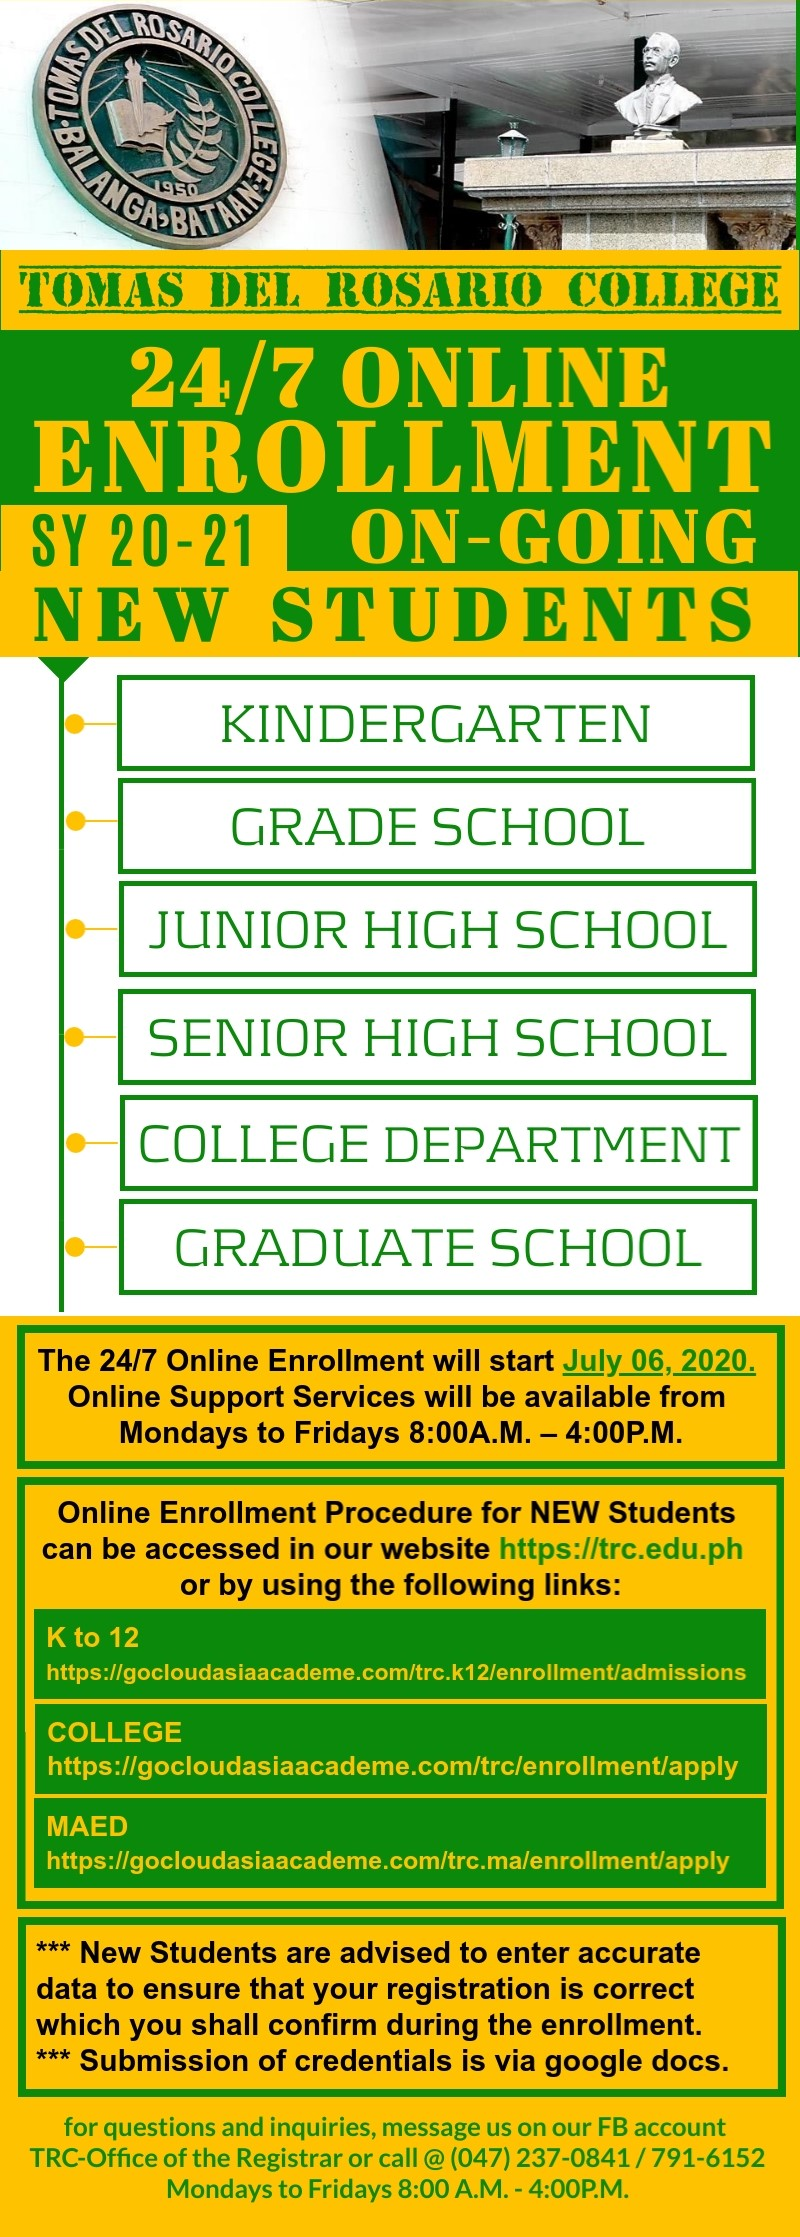 ONLINE ENROLLMENT FOR NEW STUDENTS - ALL LEVELS